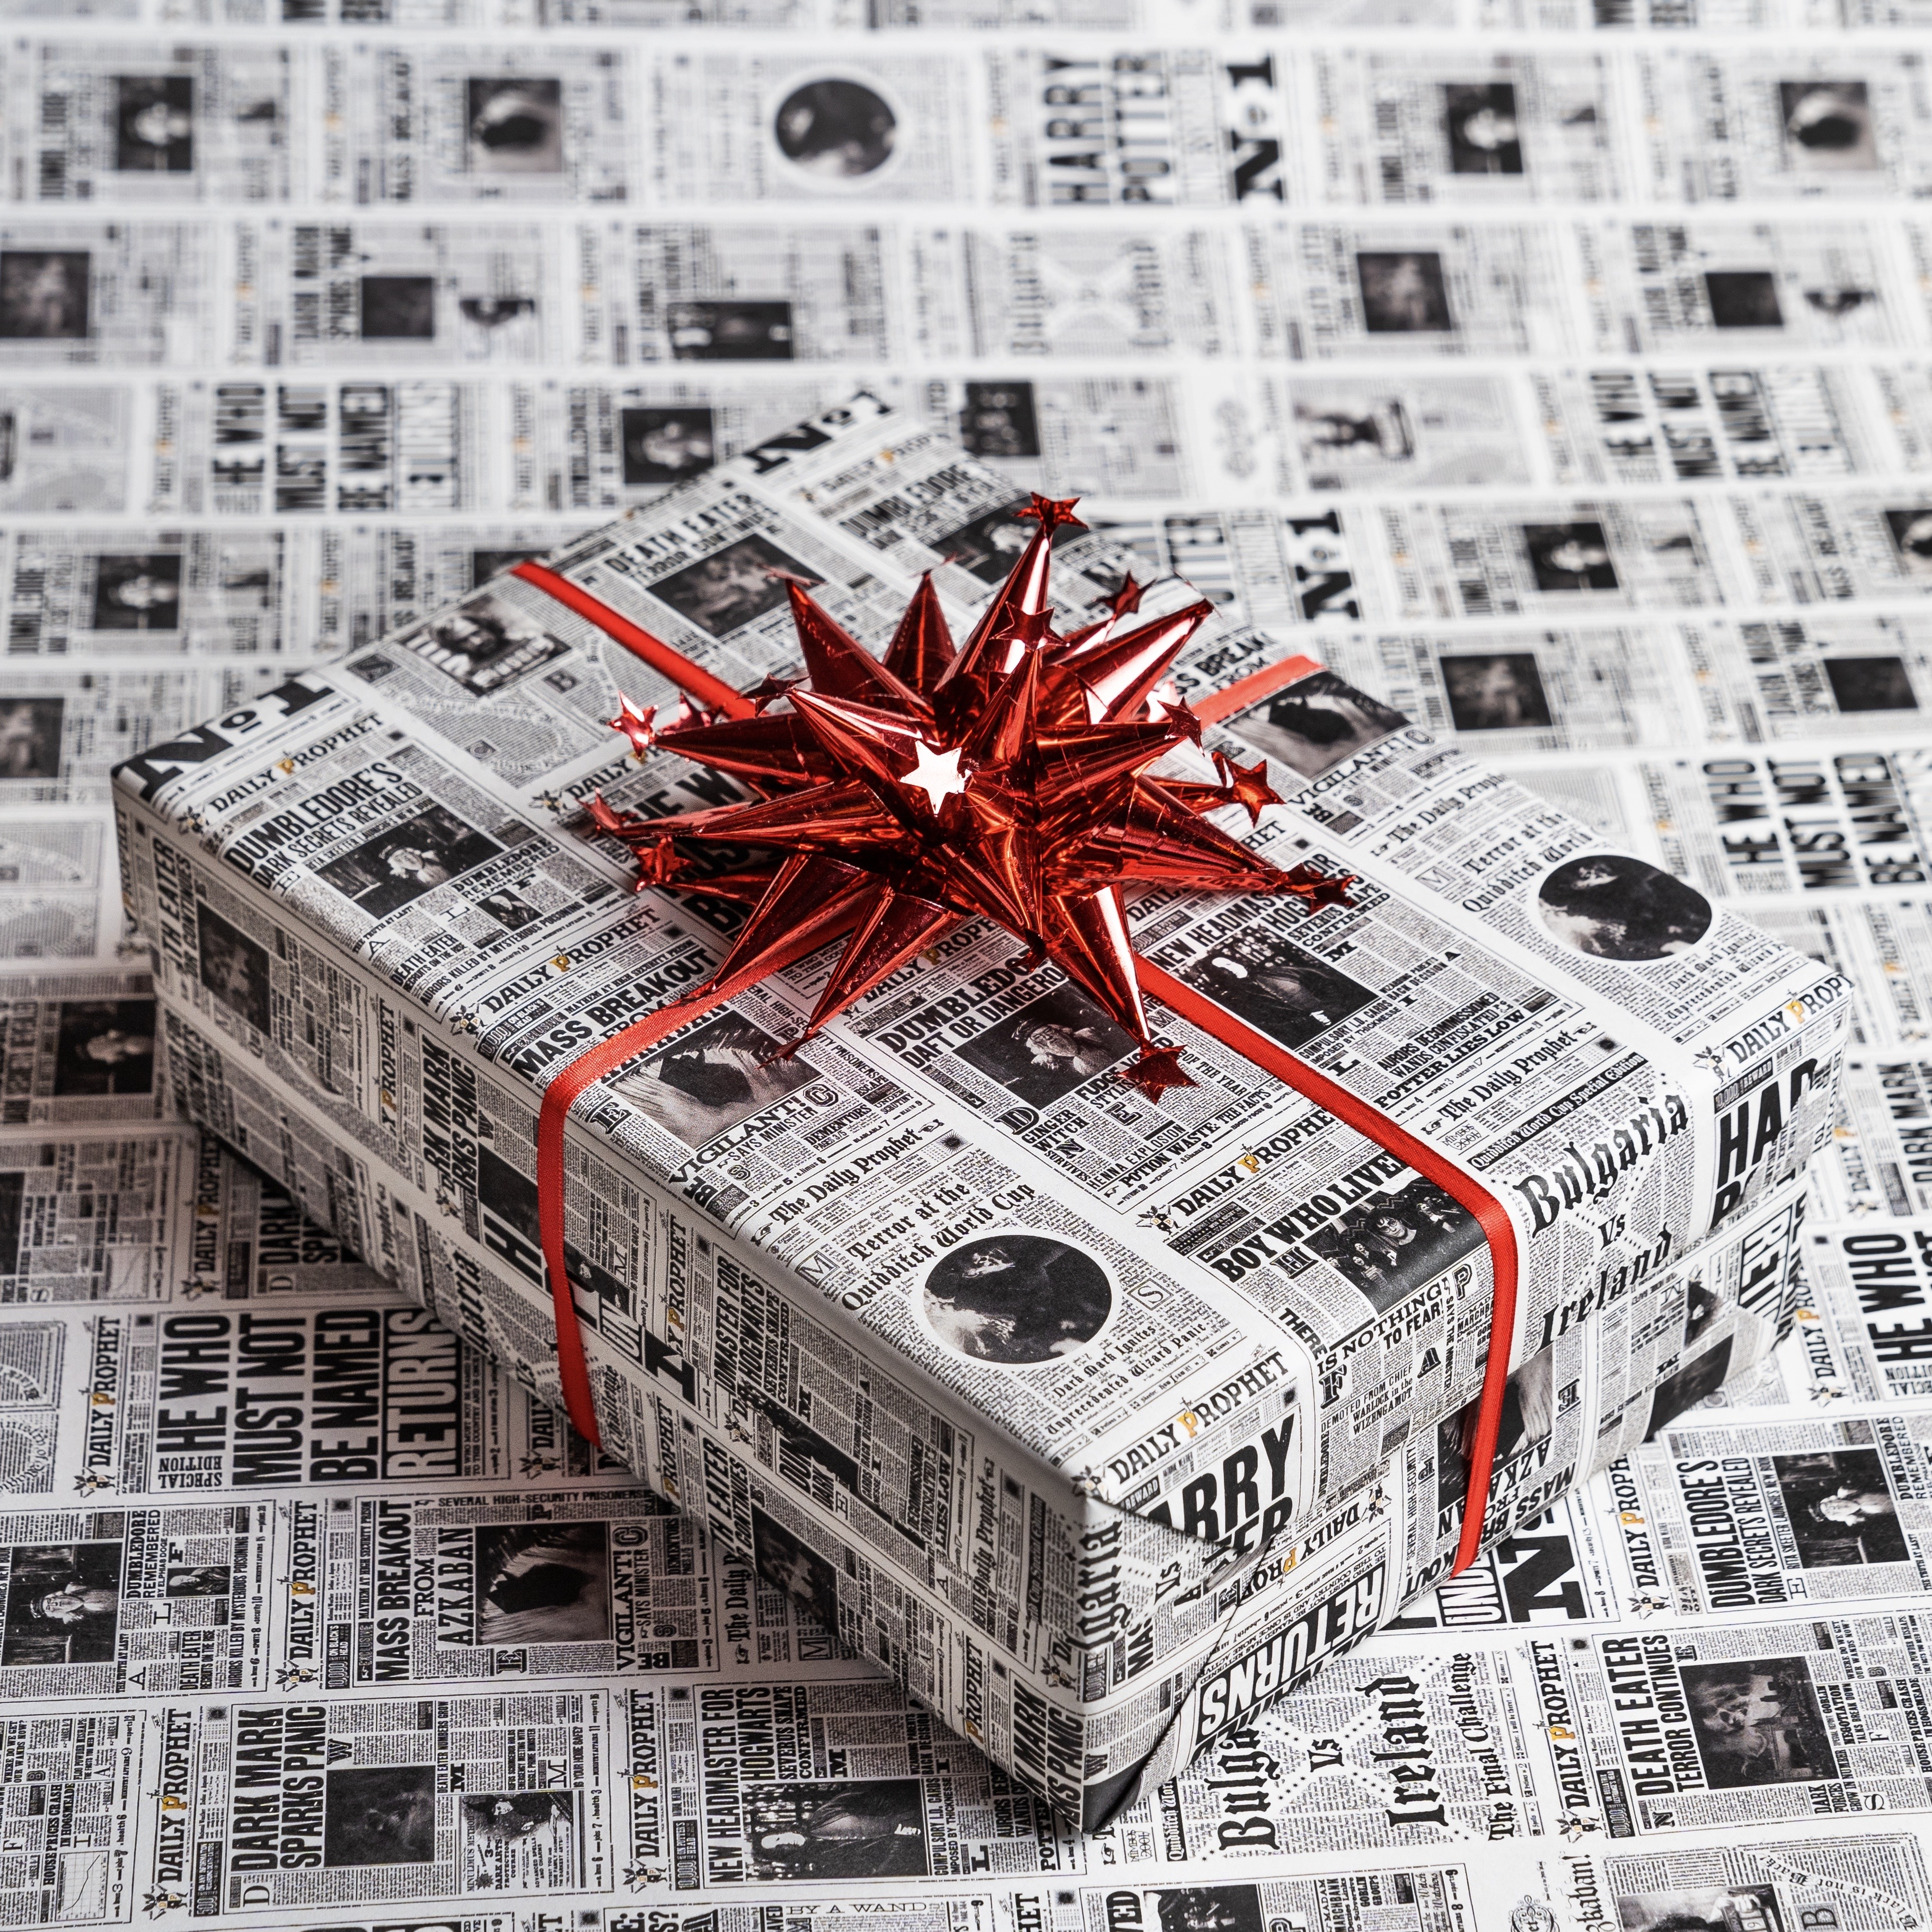 Keep up with the latest magical headlines this Christmas with the Daily Prophet gift wrap.